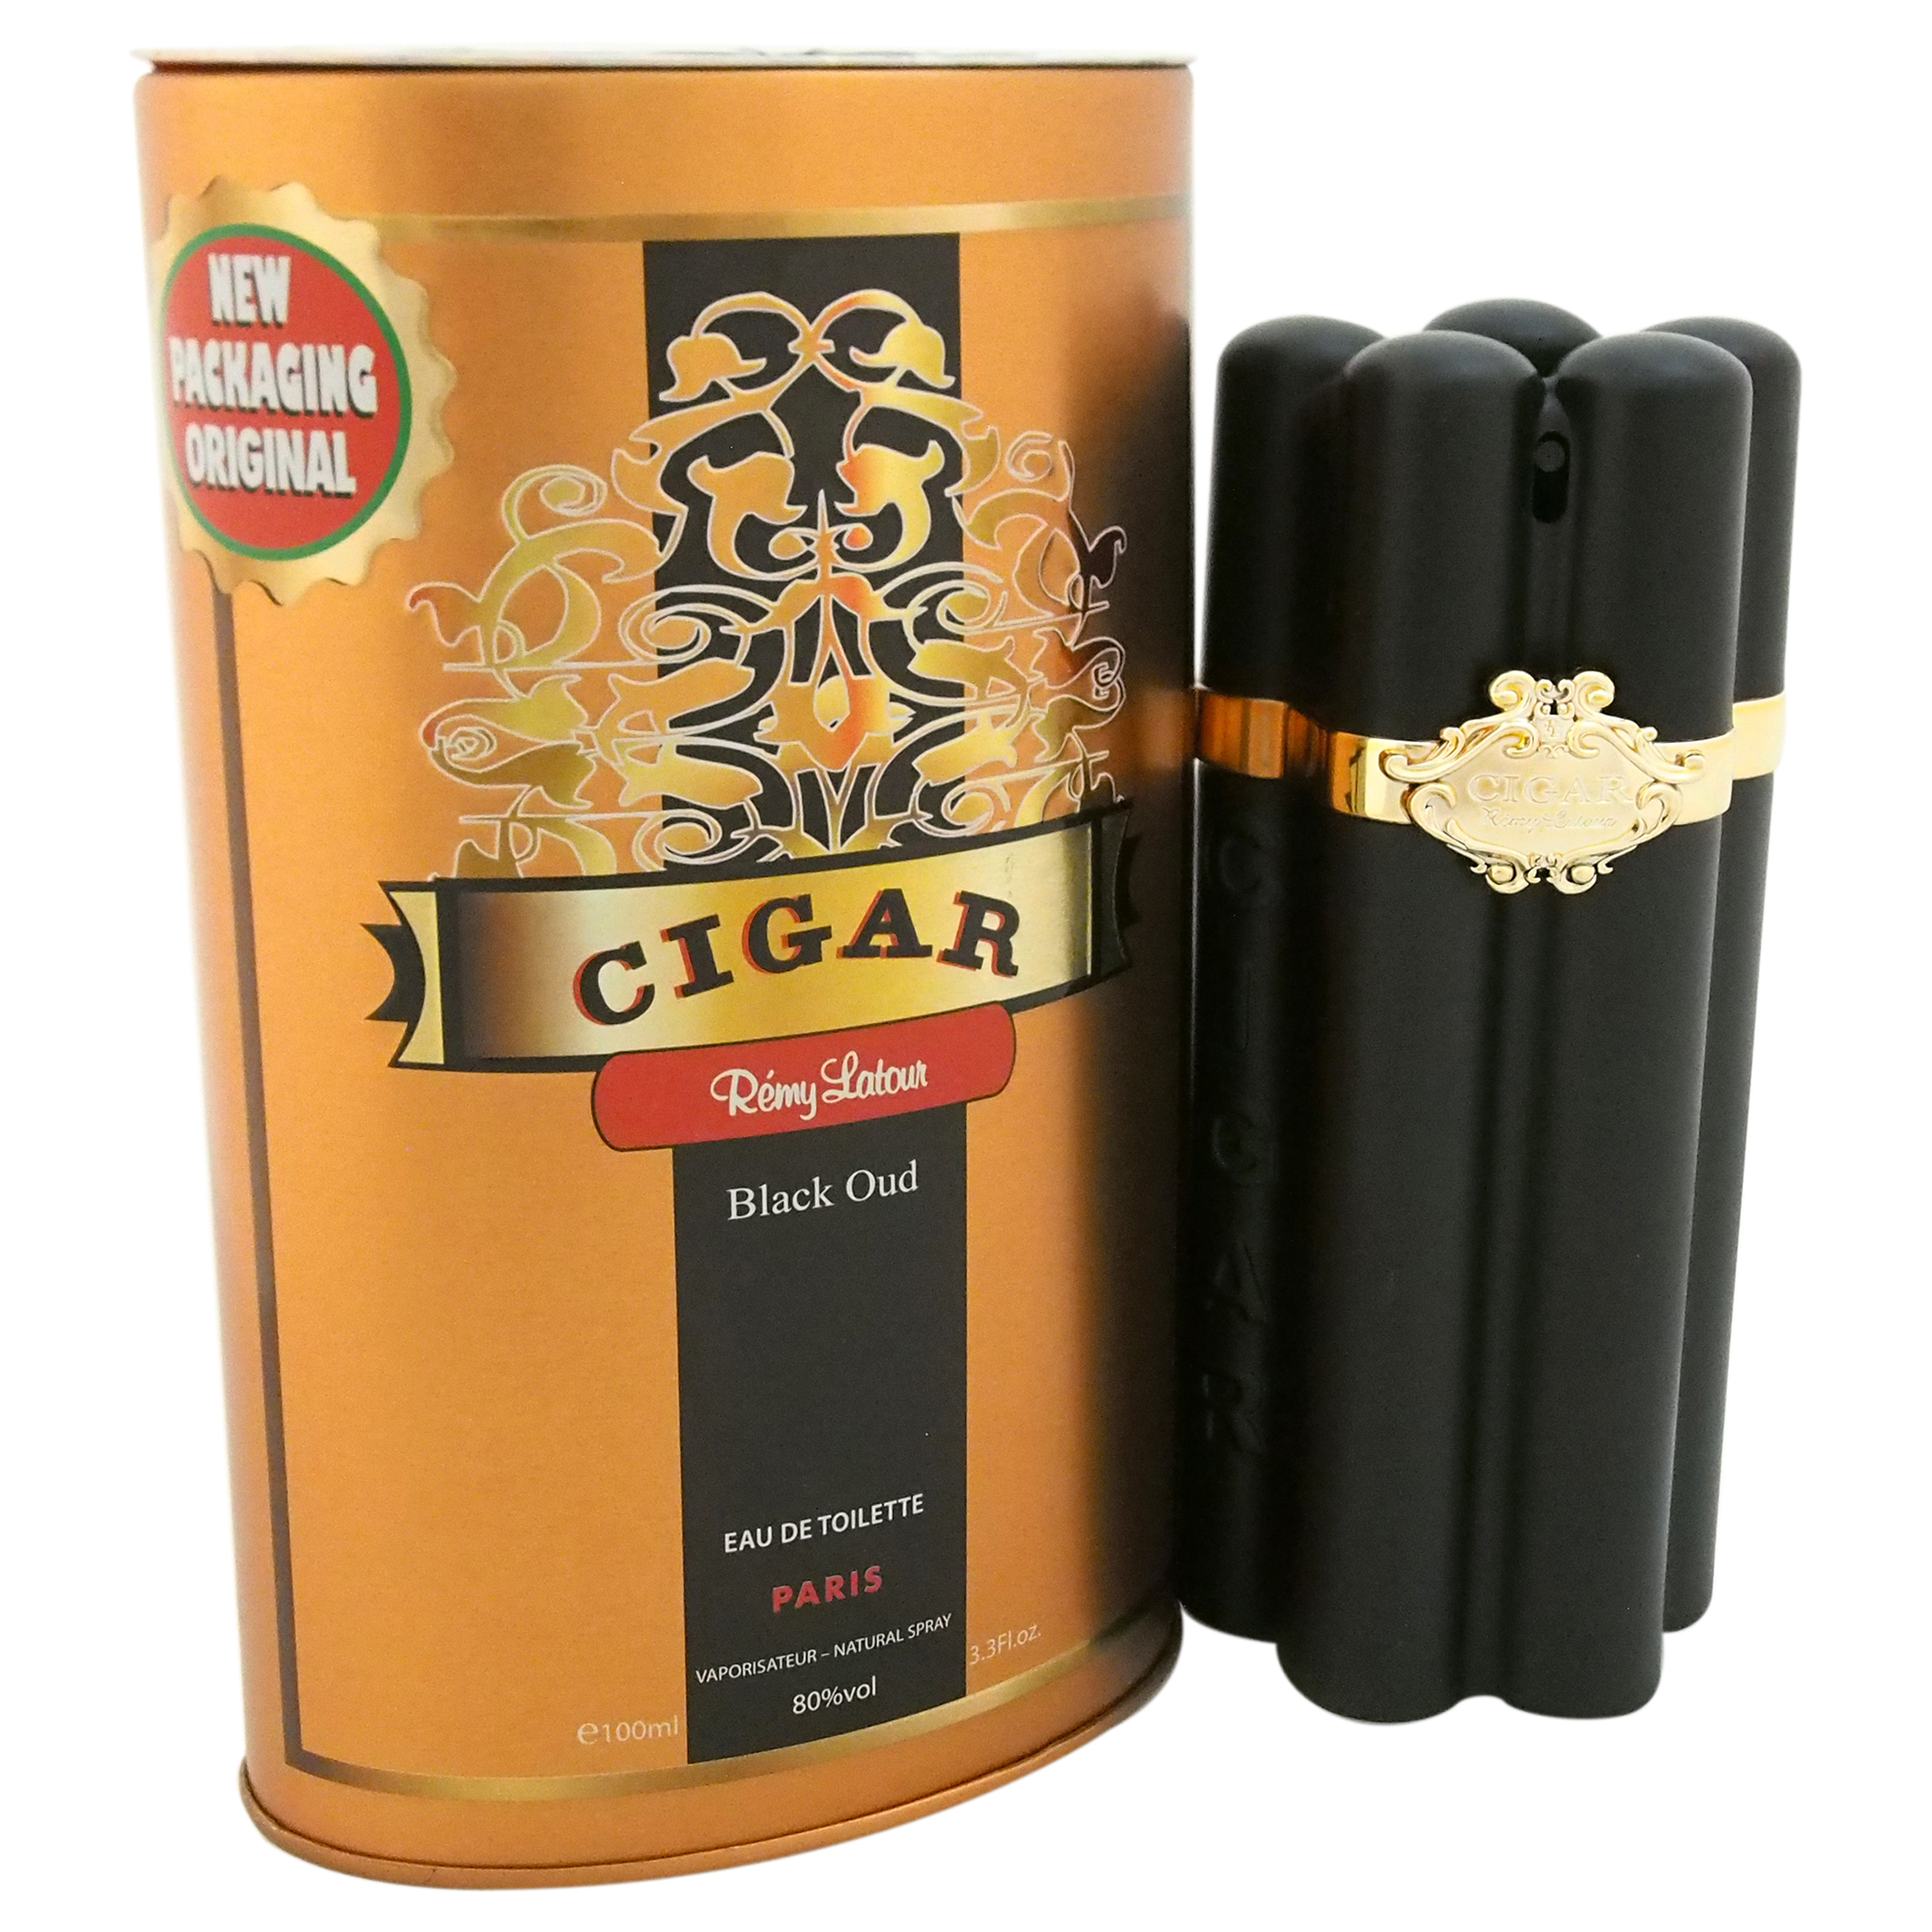 Remy Latour Cigar Black Oud Eau De Toilette For Men 100ml Perfumes For Men ratans